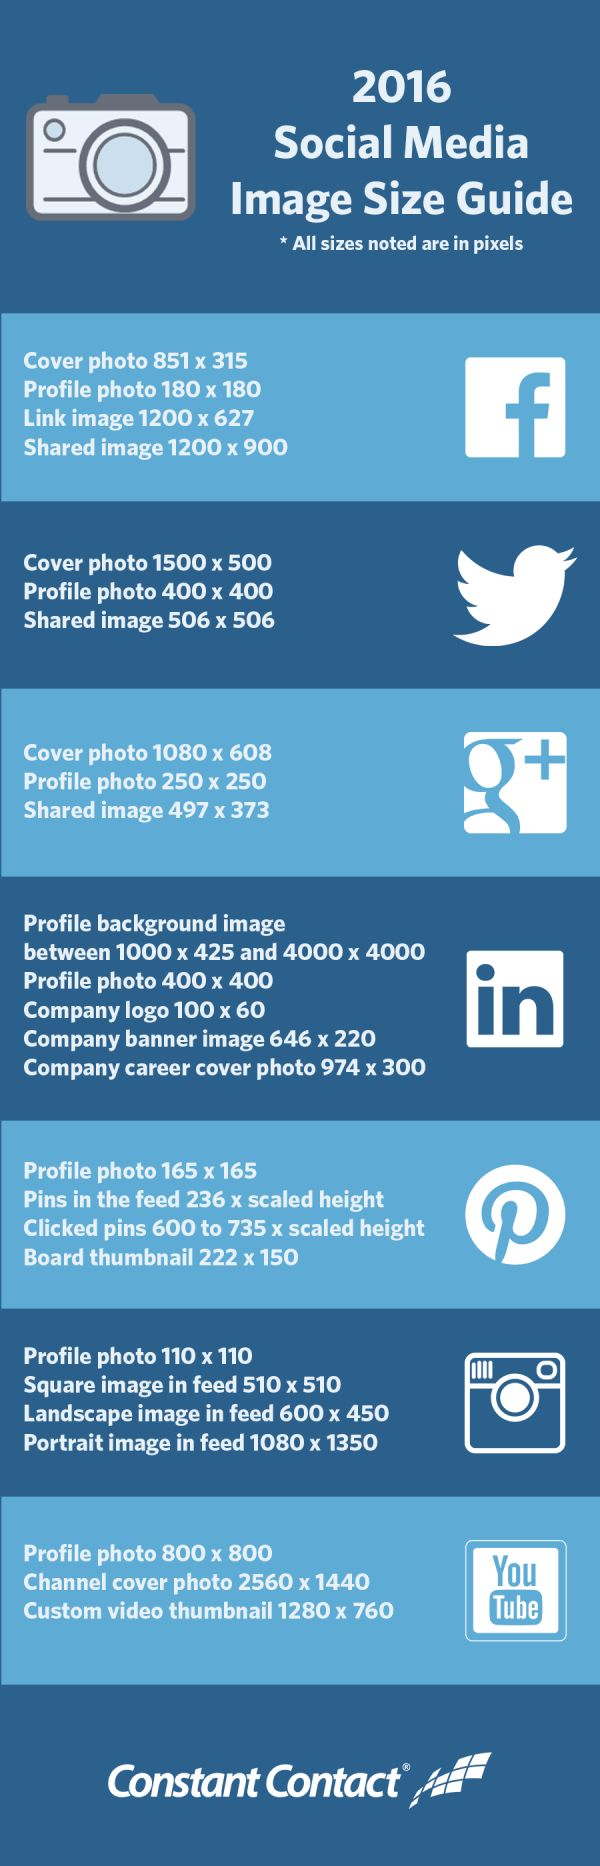 Constant Contact 2016 Social Media Image Guide  http://www.pagemodo.com/blog/2016-social-media-image-size-cheat-sheet/